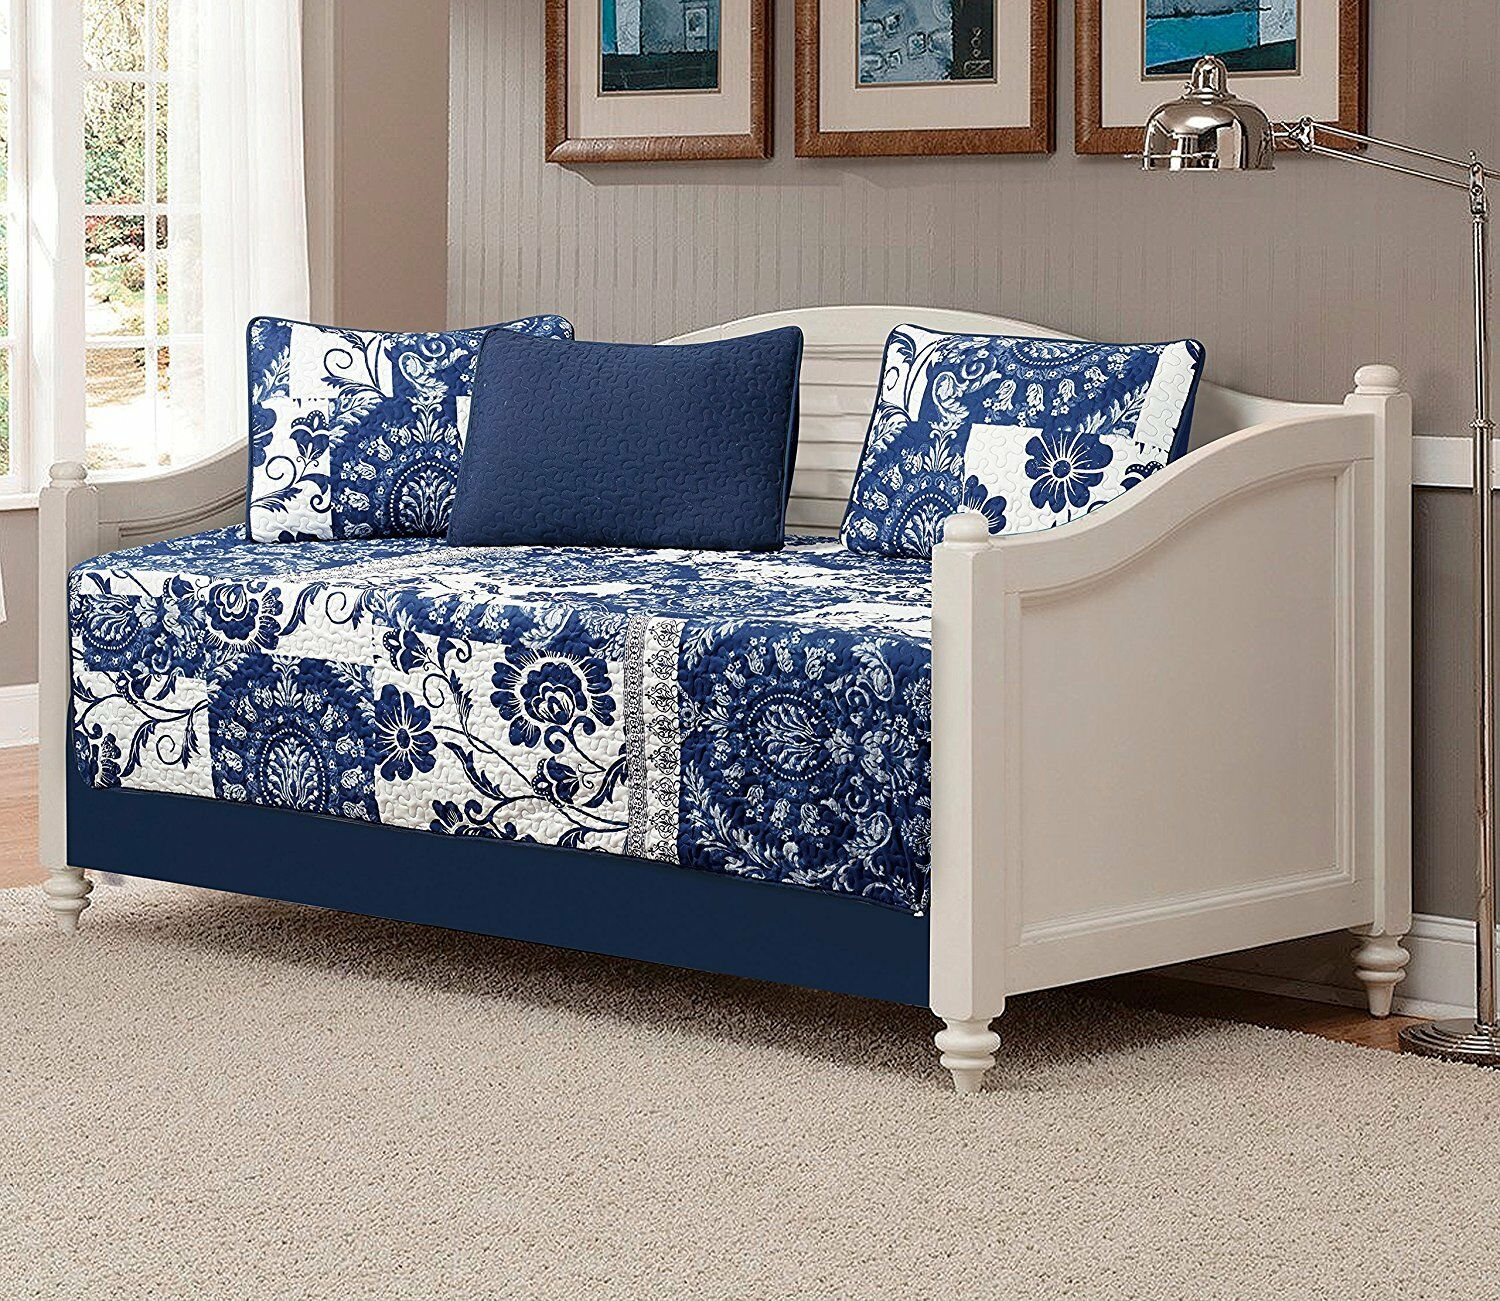 Fancy Linen 5pc Daybed Quilted Floral White Navy Blue New